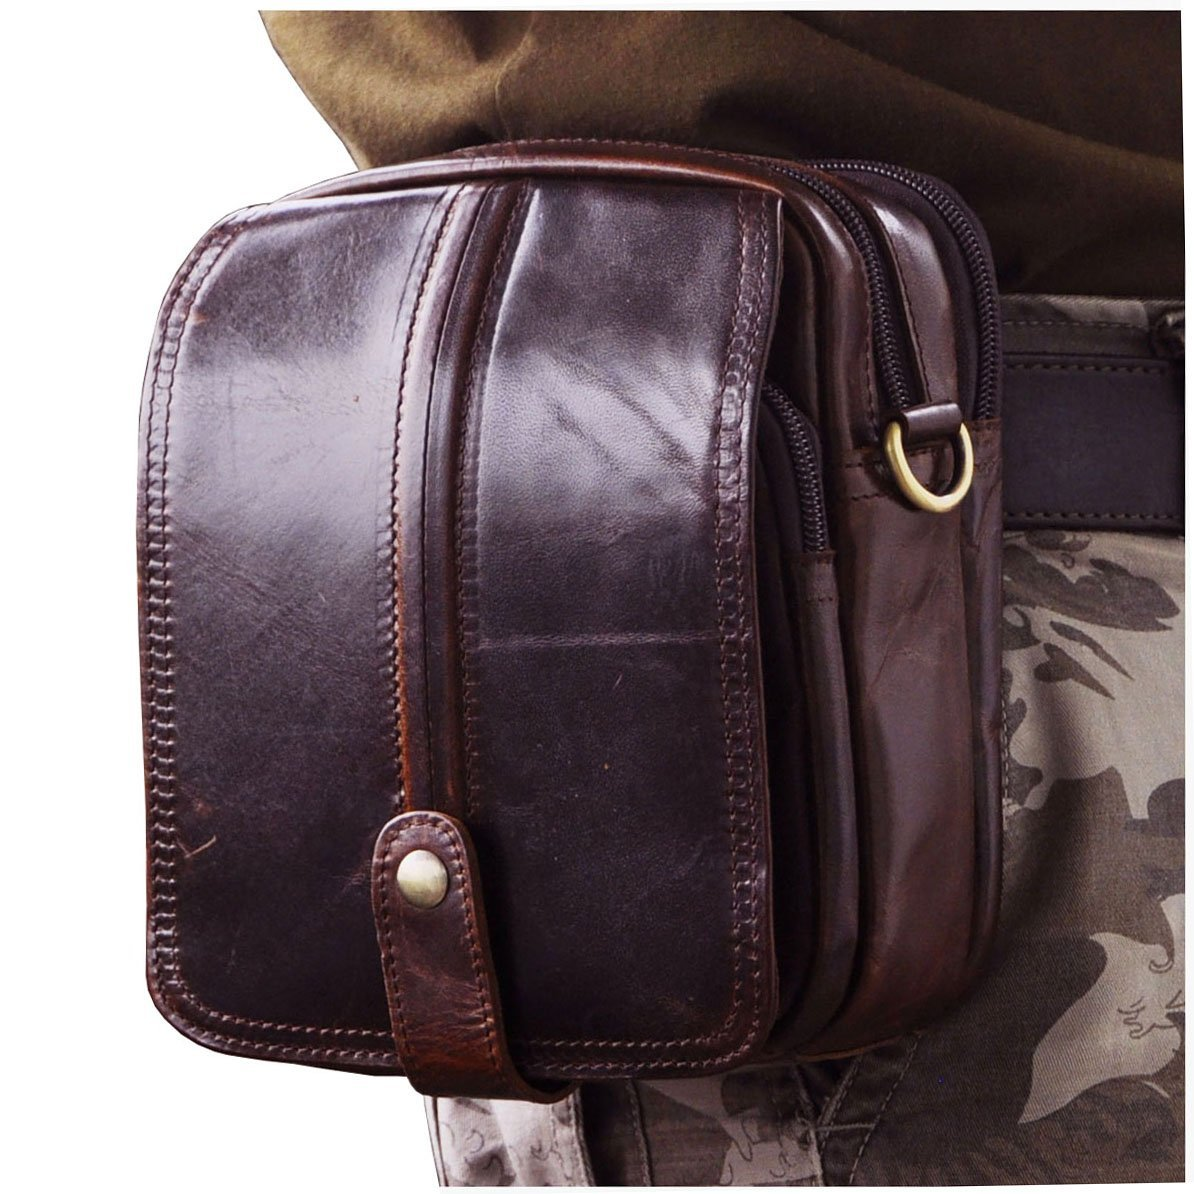 Le aokuu Men Leather Vintage Fanny Waist Belt Bag Pack Designer Casual 7 Messenger Crossbody Travel Bag 38043 38043 Coffee